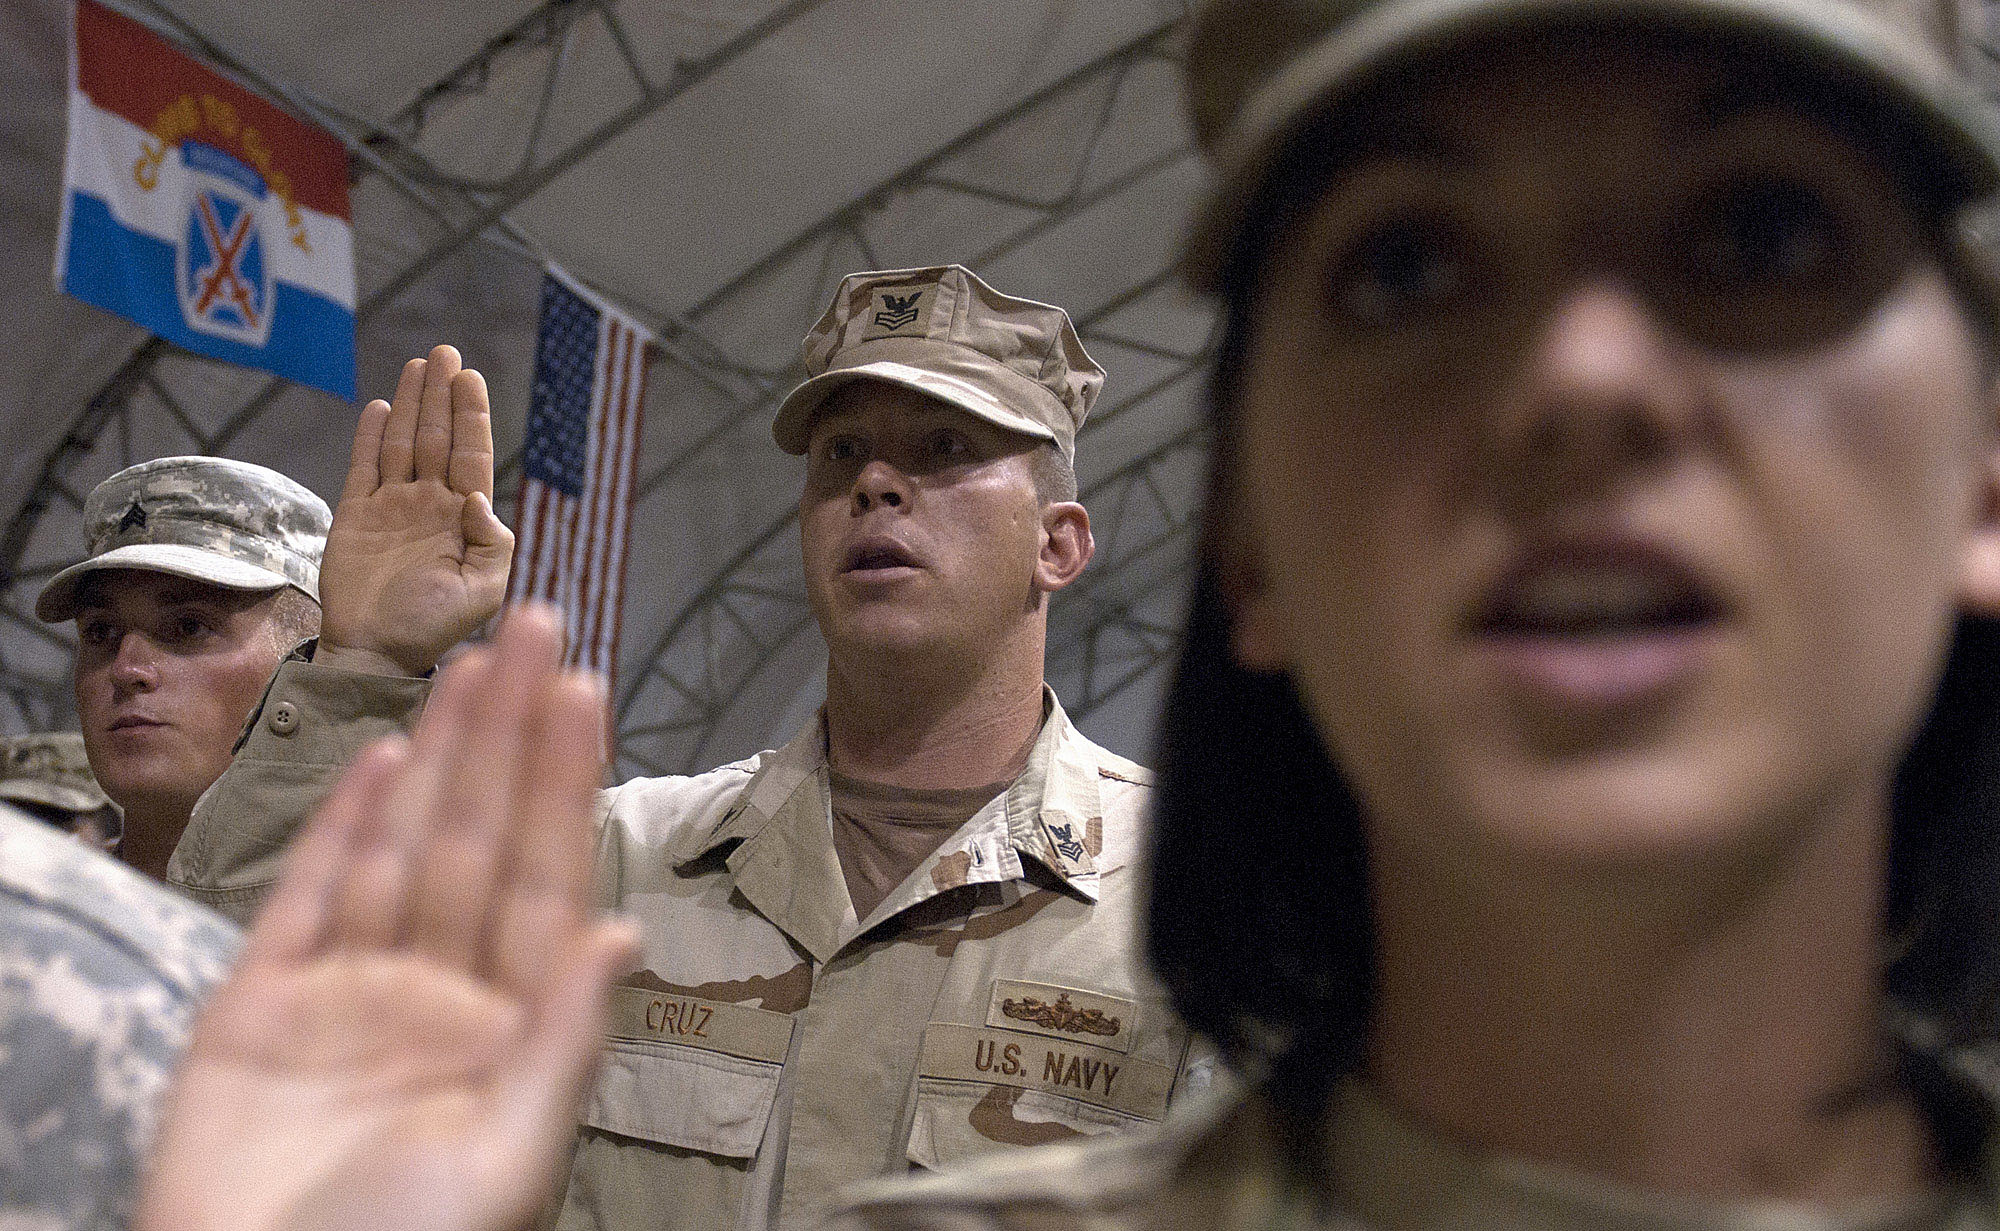 General Petraeus Administers The Oath Of Re-enlistment To 235 U.S. Service Members In  Kandahar